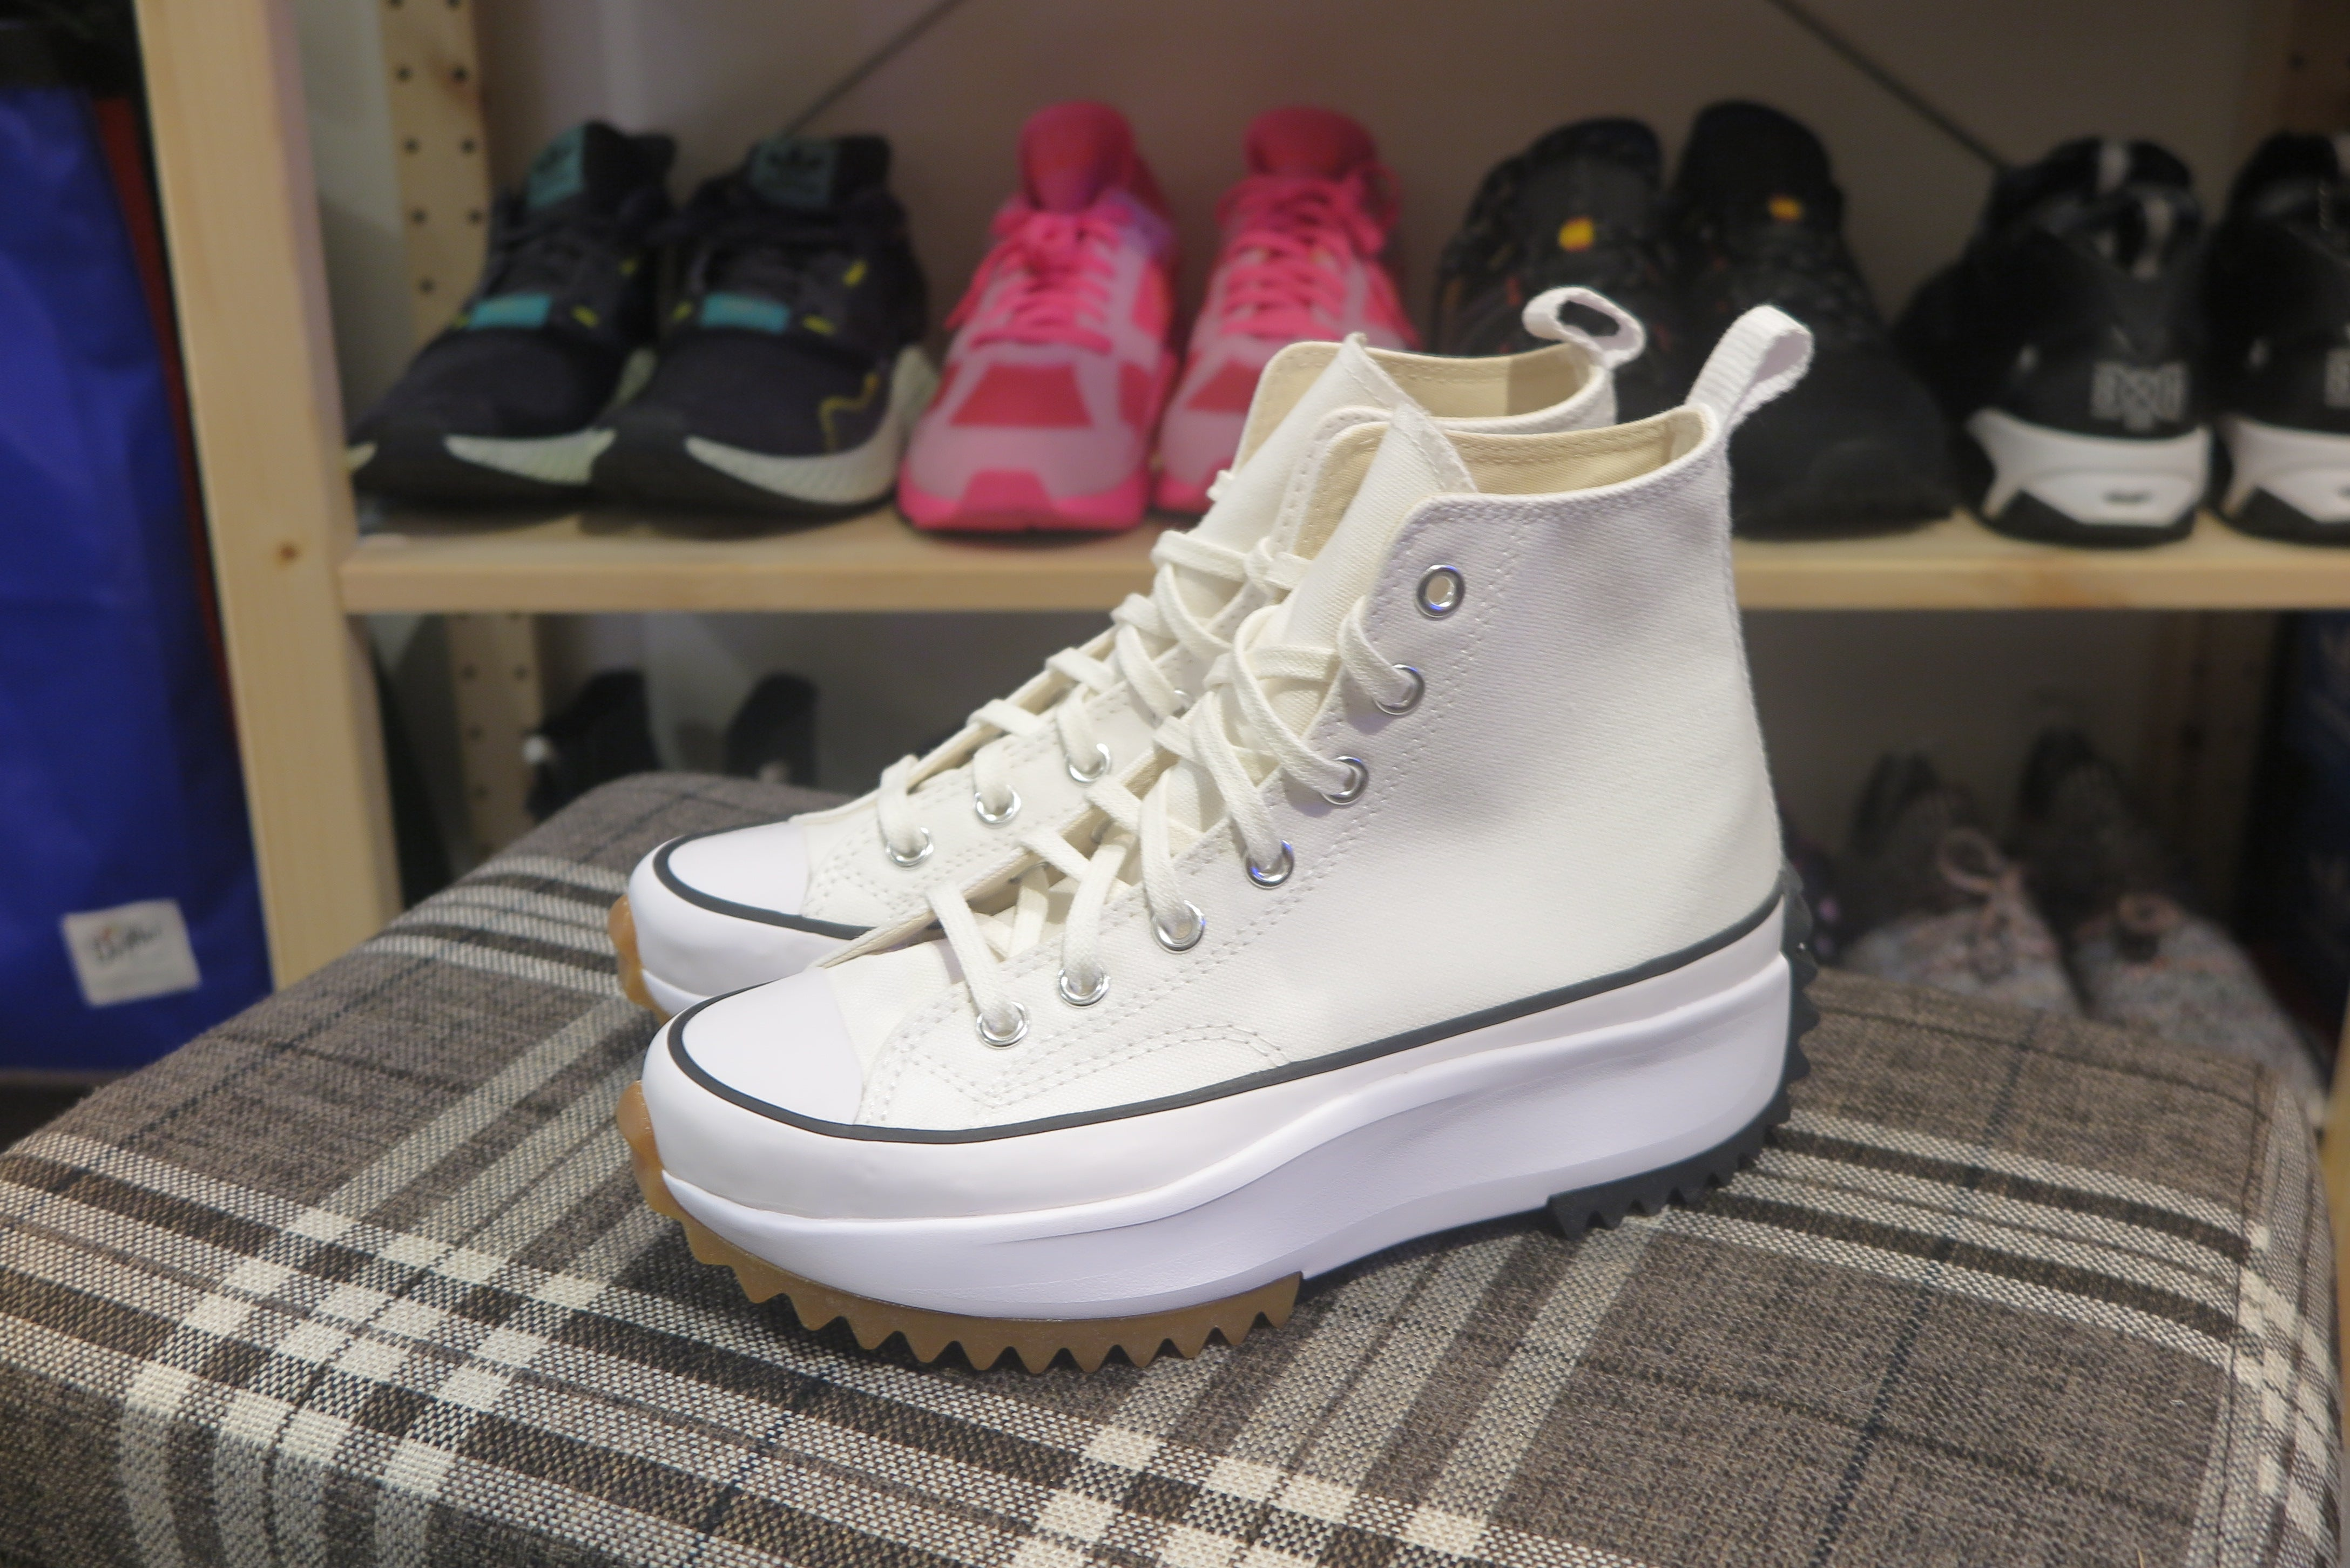 Converse Run Star Hike Hi - White/Black/Gum #166799C-Preorder Item-Navy Selected Shop